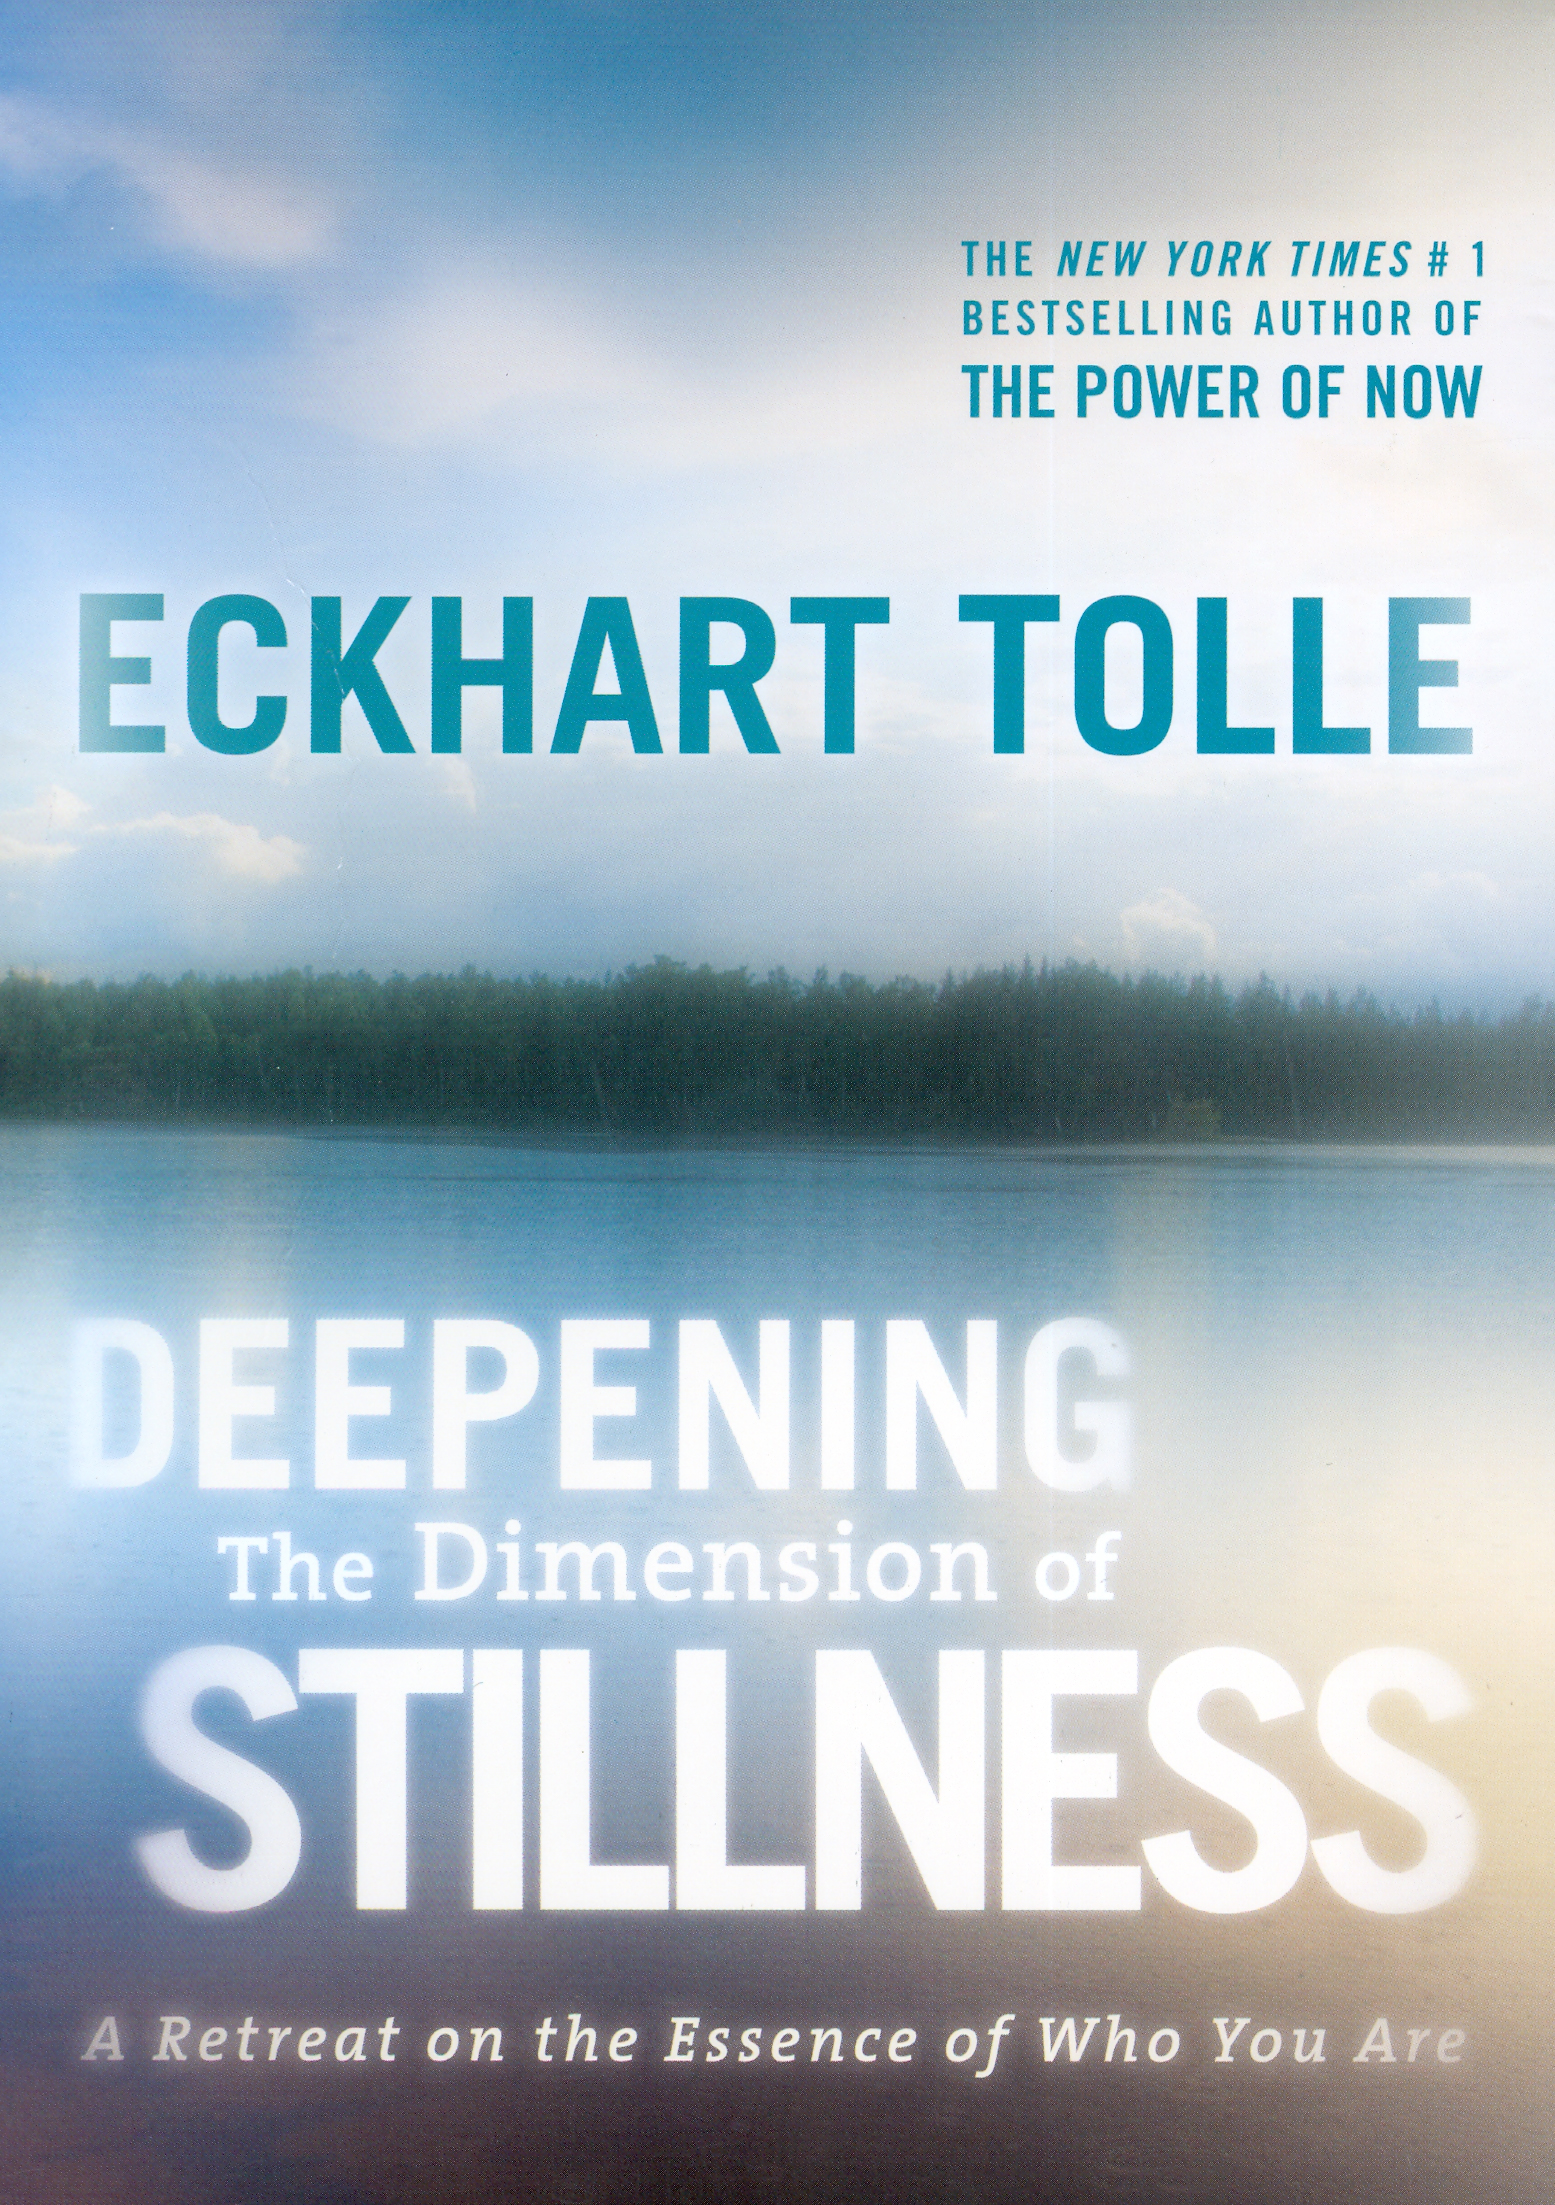 Eckhart Tolle: Deepening the Dimension of Stillness